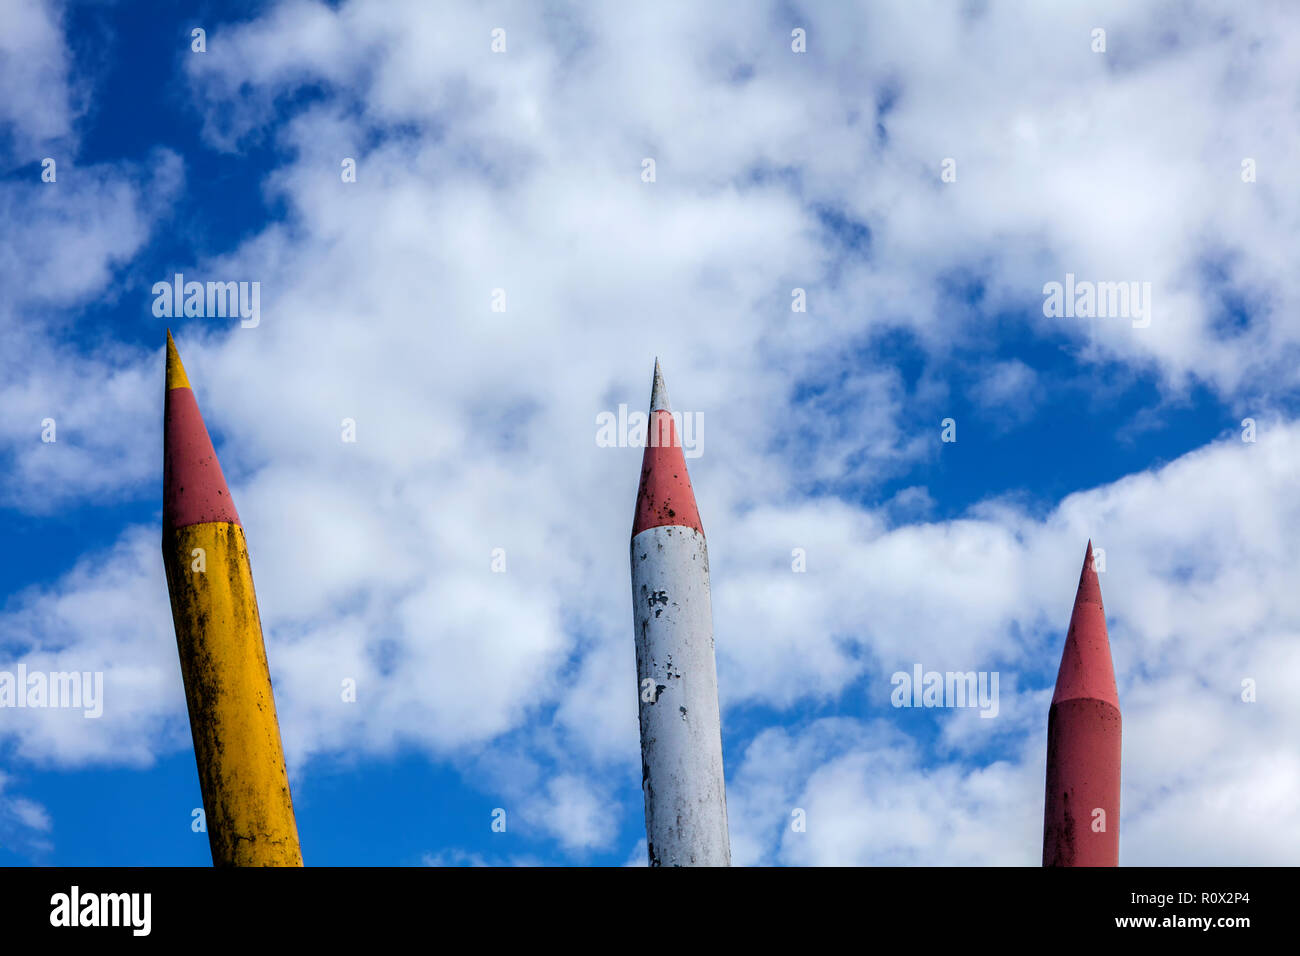 Crayons de couleur, Marie-Durand-école, Bad Karlshafen, Weser Uplands, Hesse, Germany, Europe Photo Stock